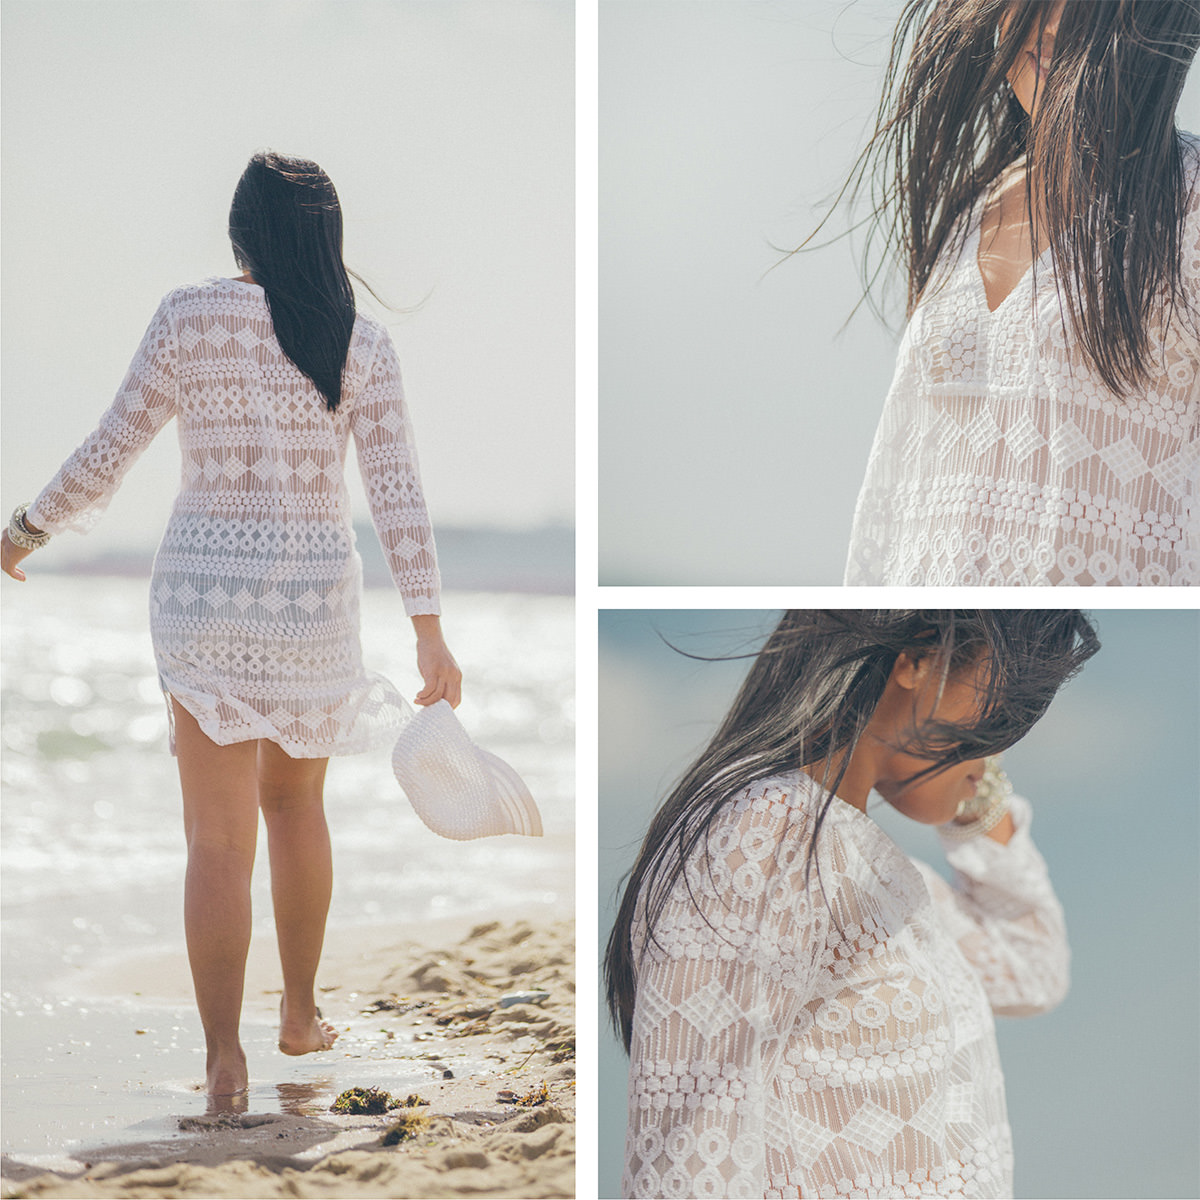 beach wear - relaxed fashion at the beach